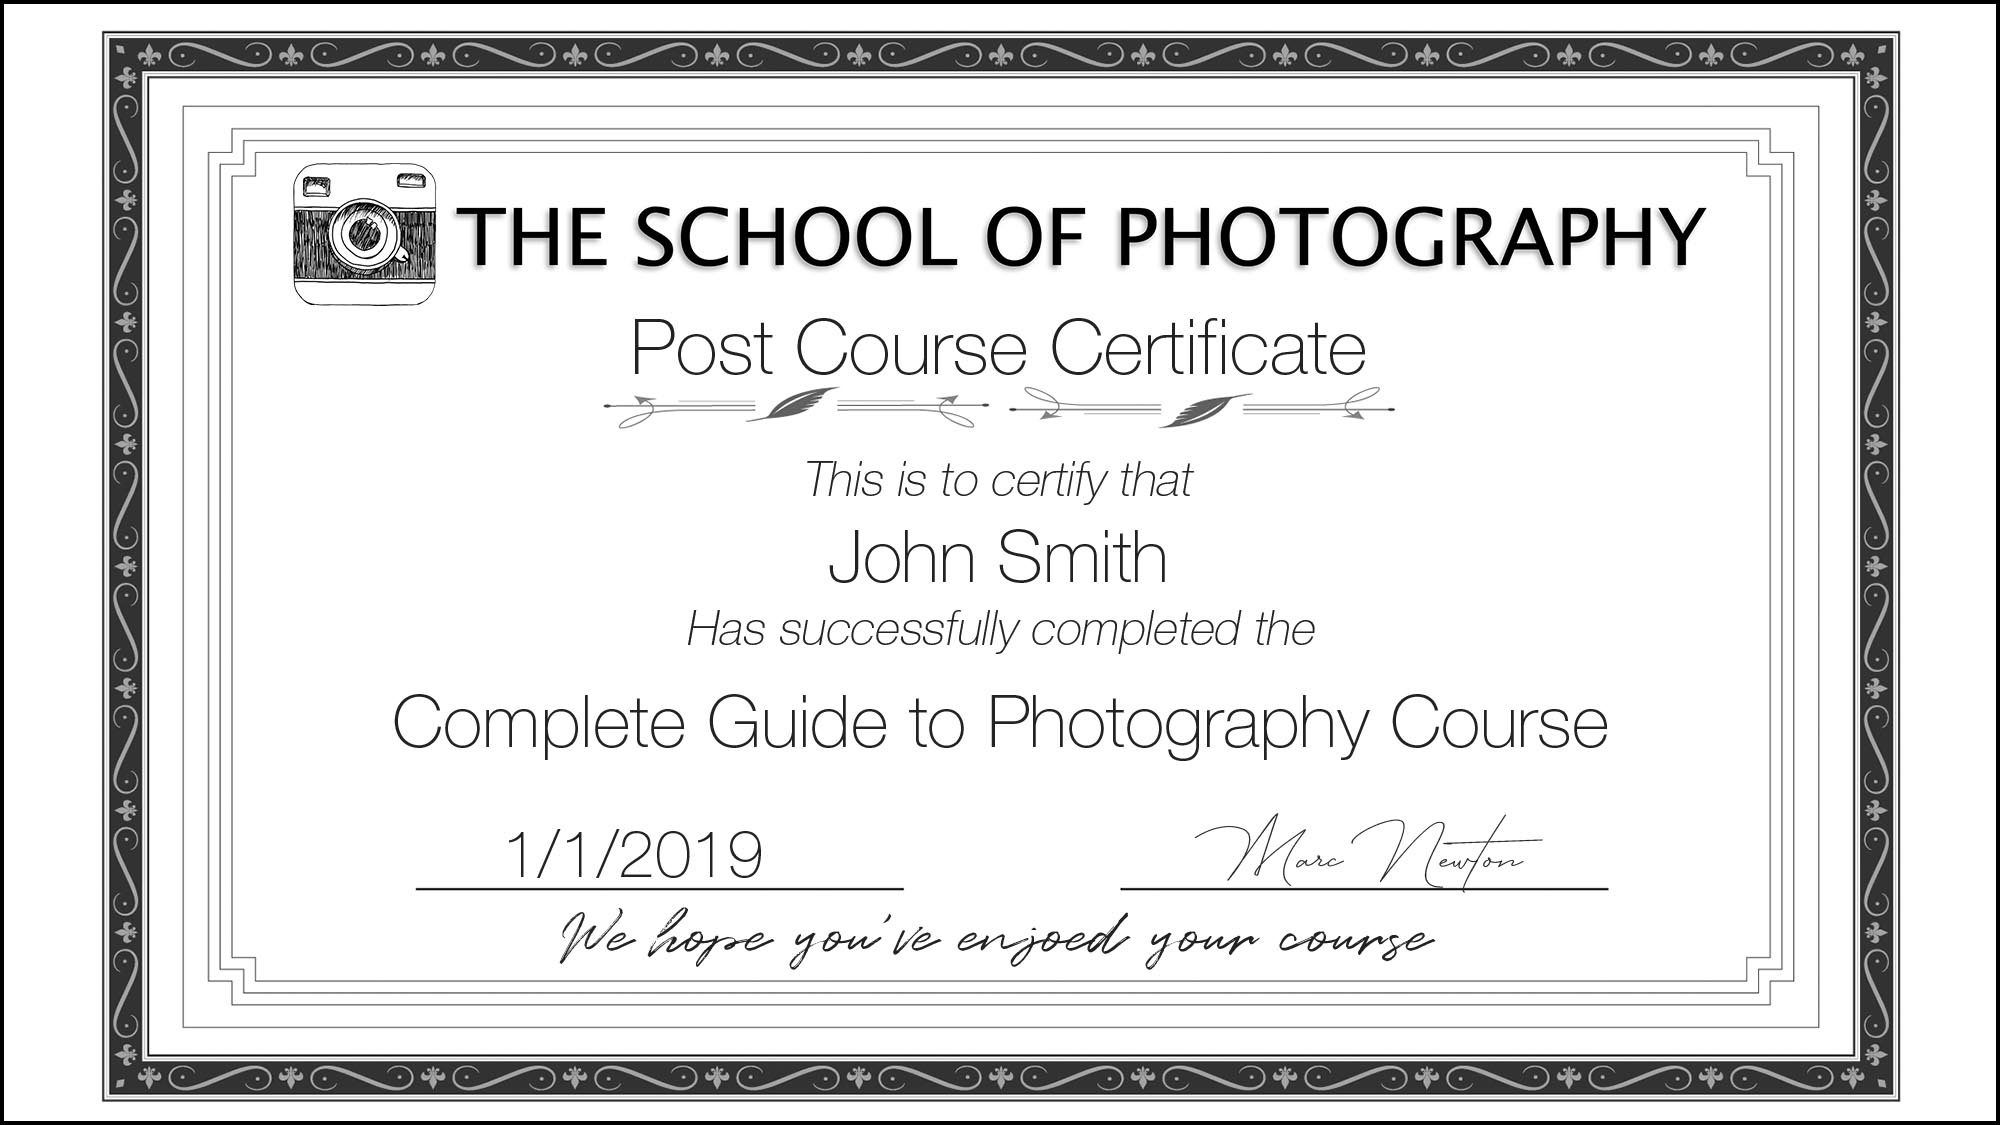 Get Certified - On completion of all our all courses, you receive a certificate from The School of Photography proving your success!